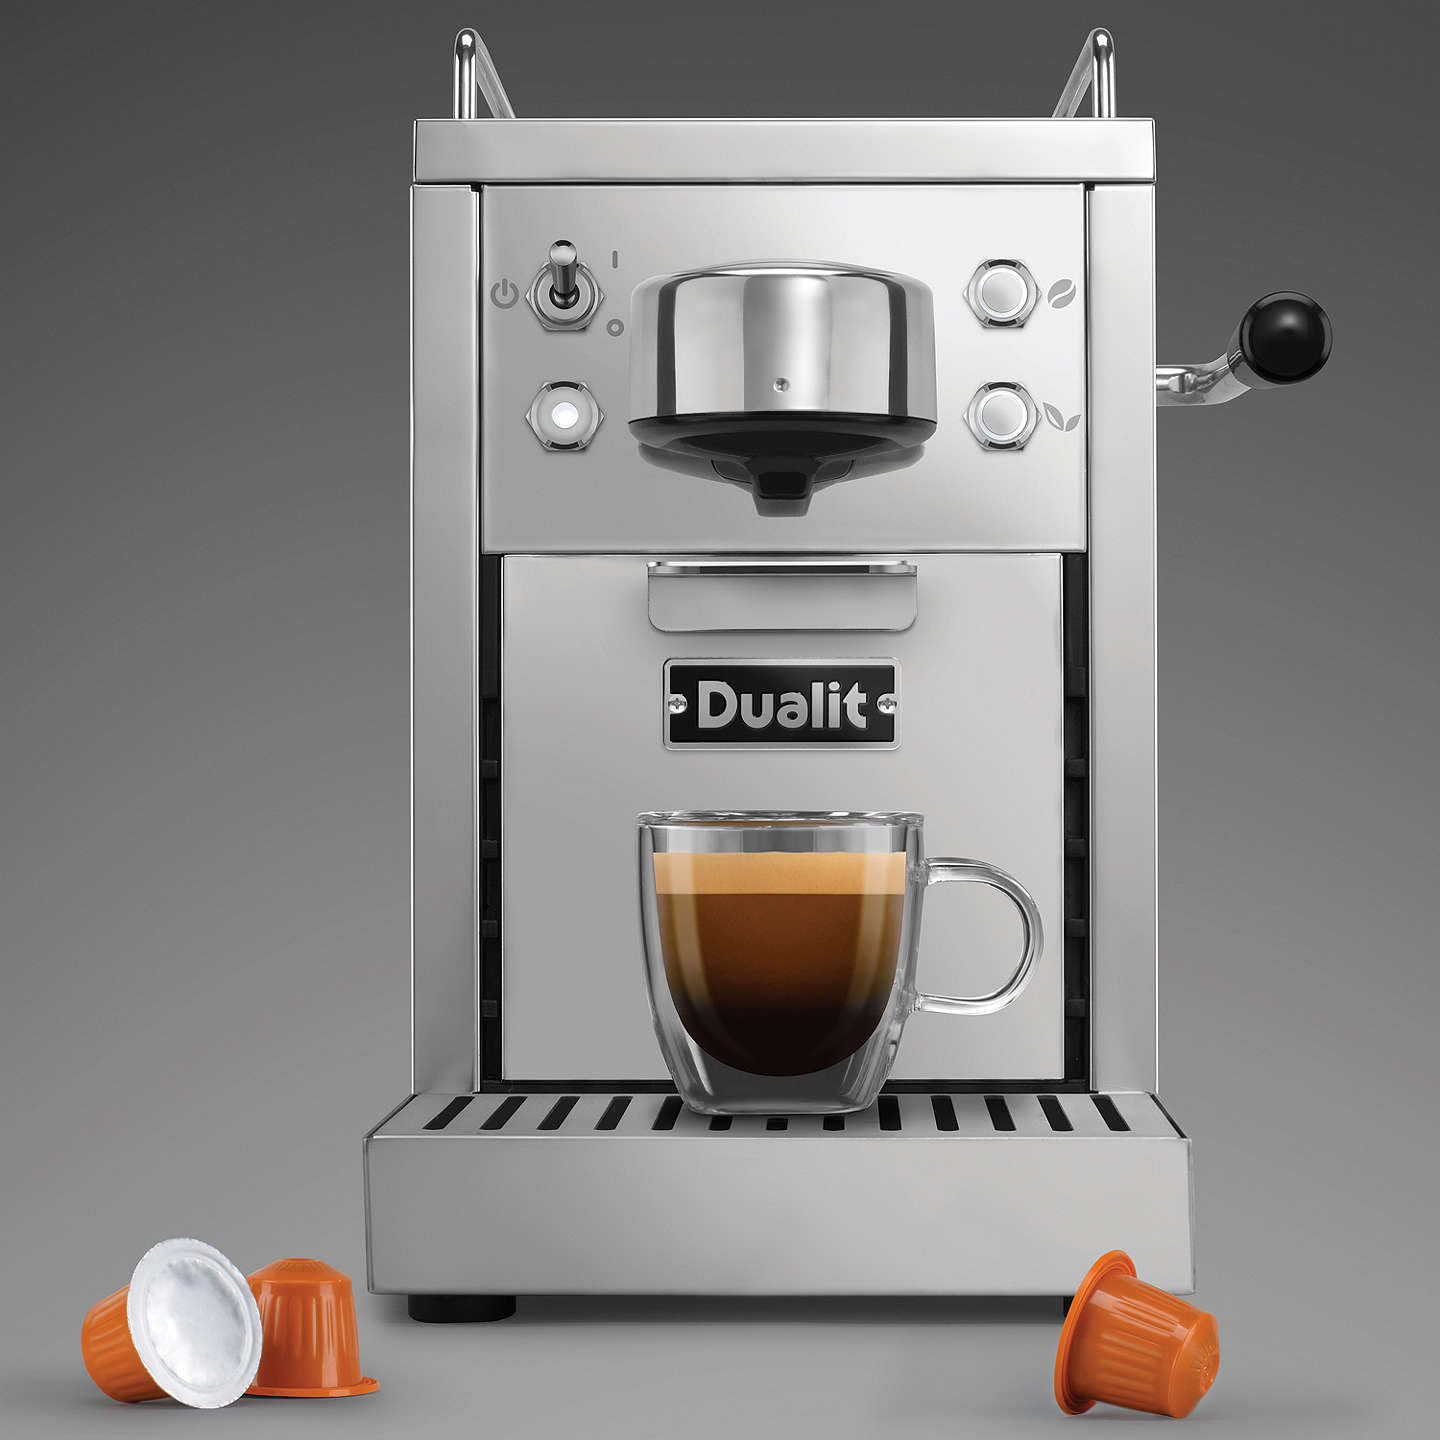 BuyDualit 85170 Classic Coffee Capsule Machine, Stainless Steel Online at johnlewis.com